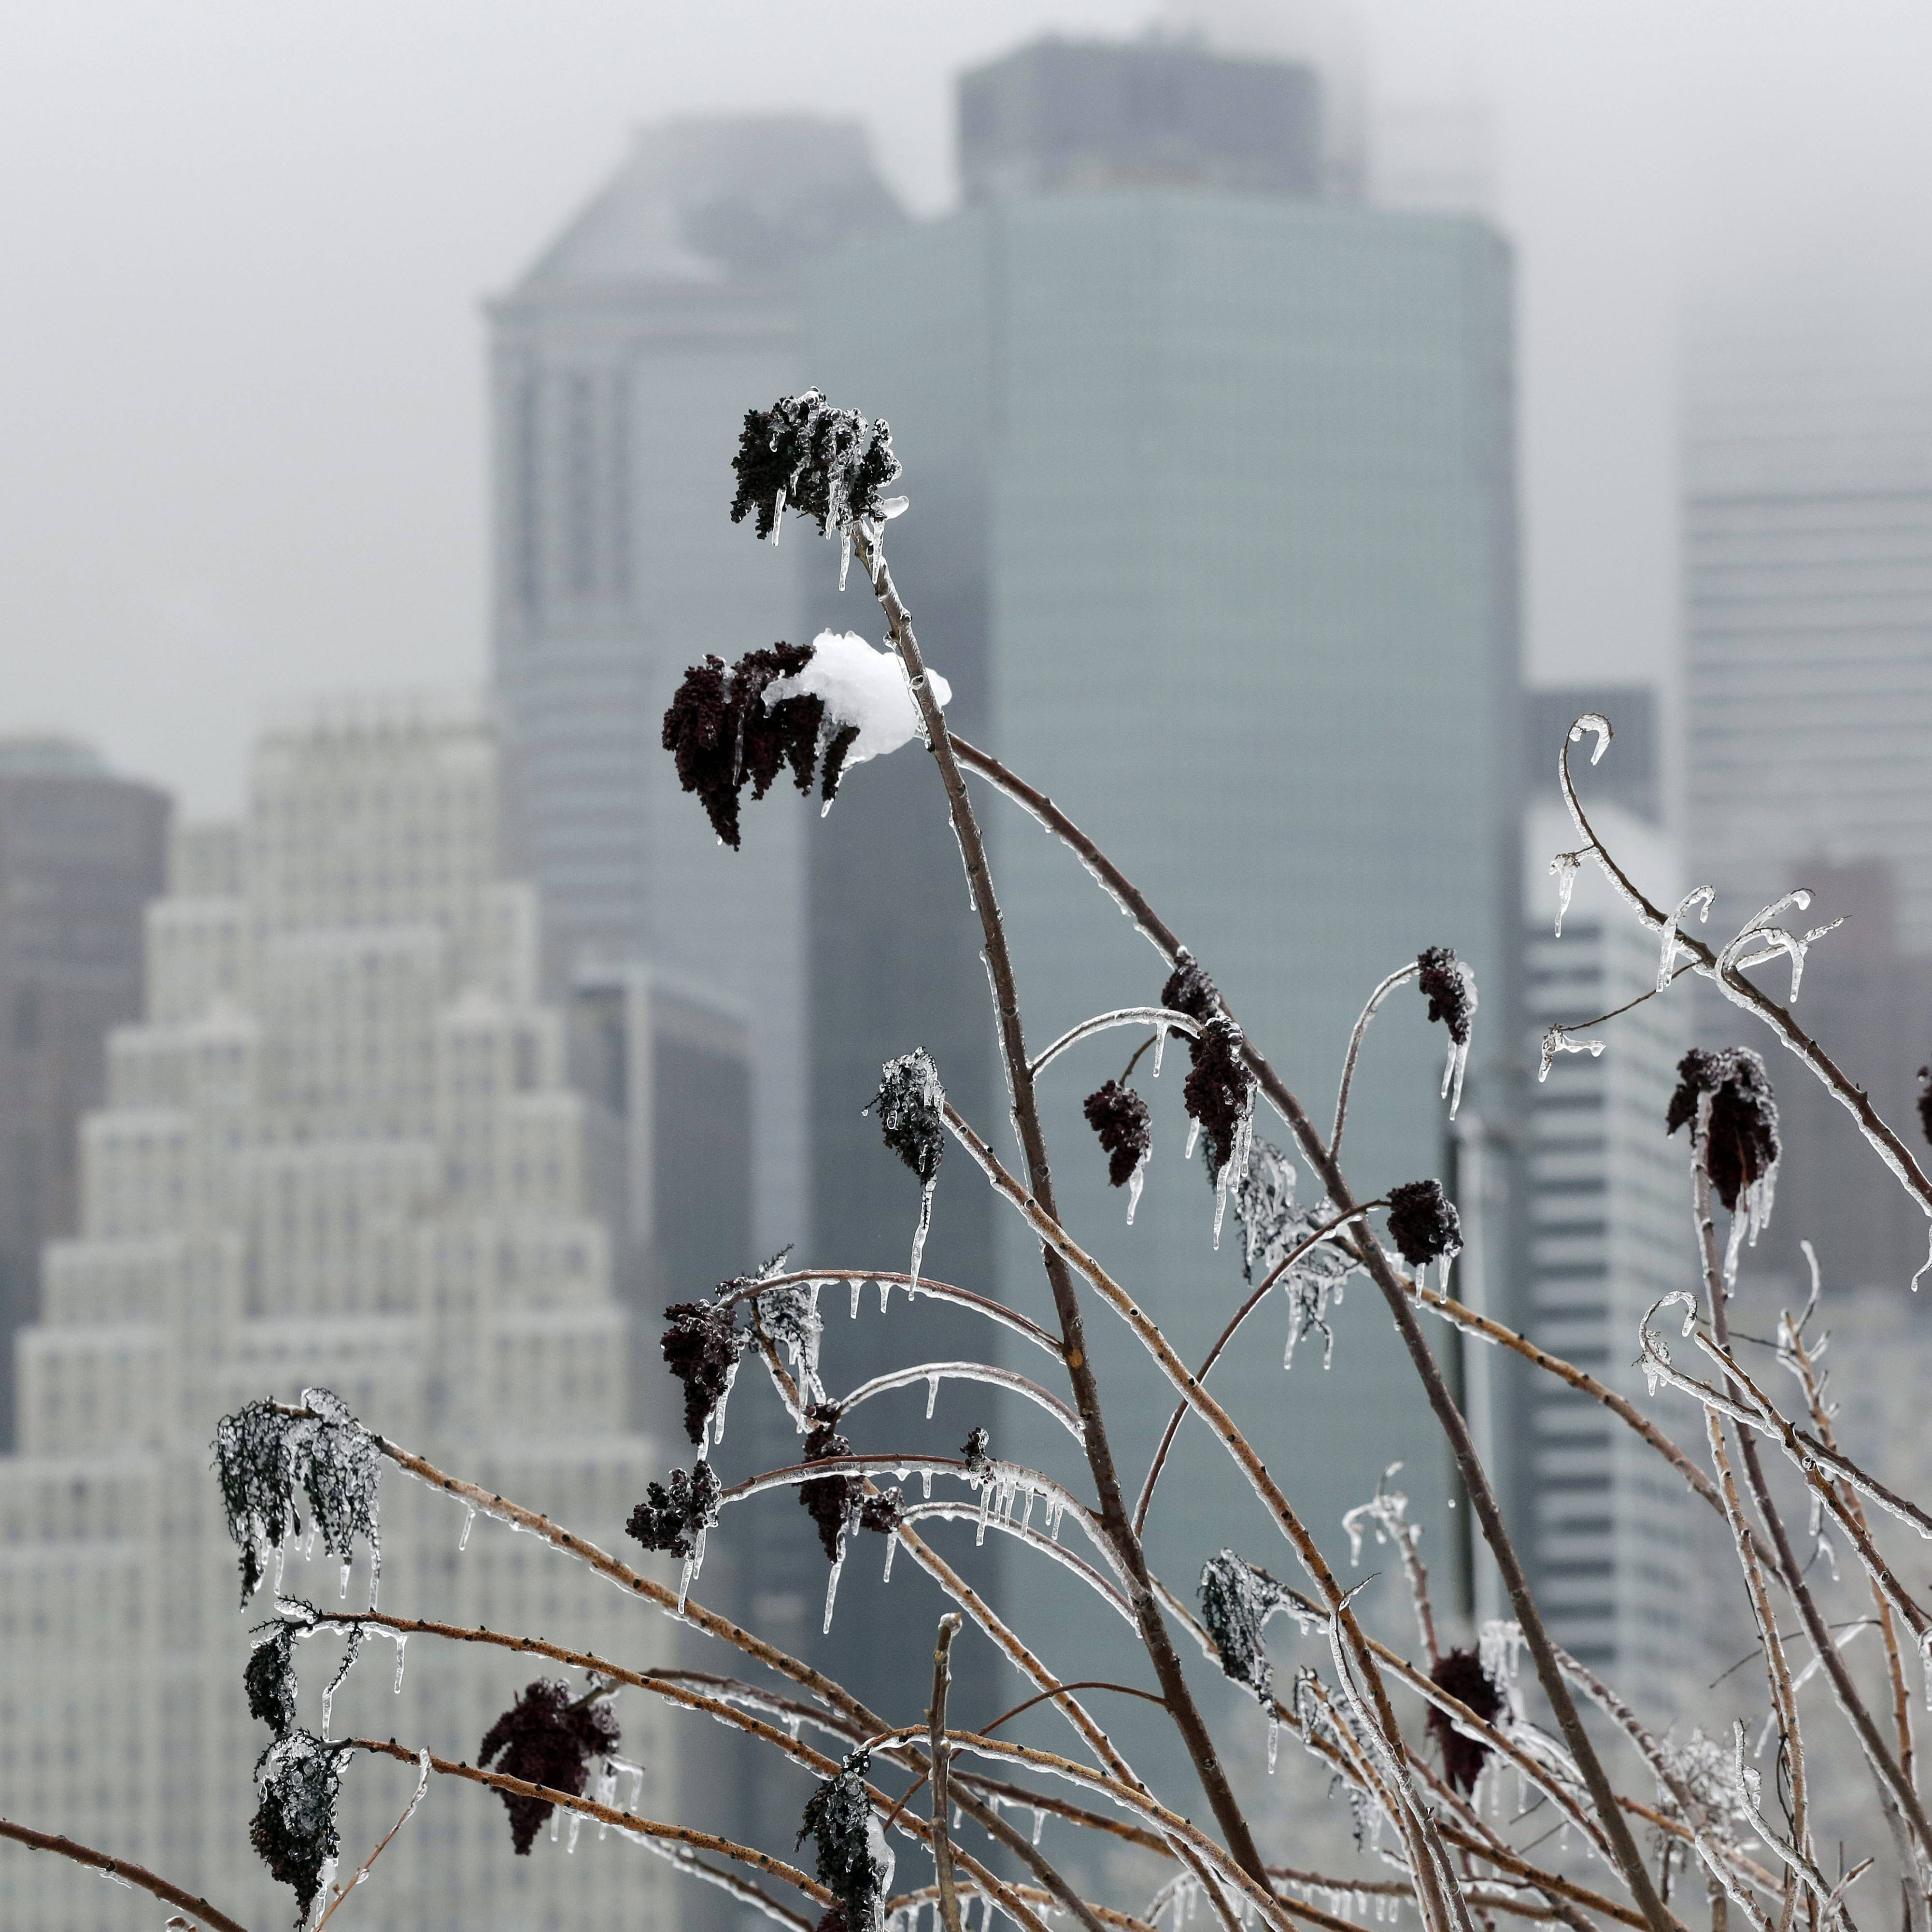 Icicles coat grasses along the Brooklyn waterfront with the Manhattan skyline in the background, Wednesday, Feb. 5, 2014 in New York. Gov. Andrew Cuomo declared a statewide state of emergency, closing Interstate 84 between the Connecticut and Pennsylvania borders until midafternoon.